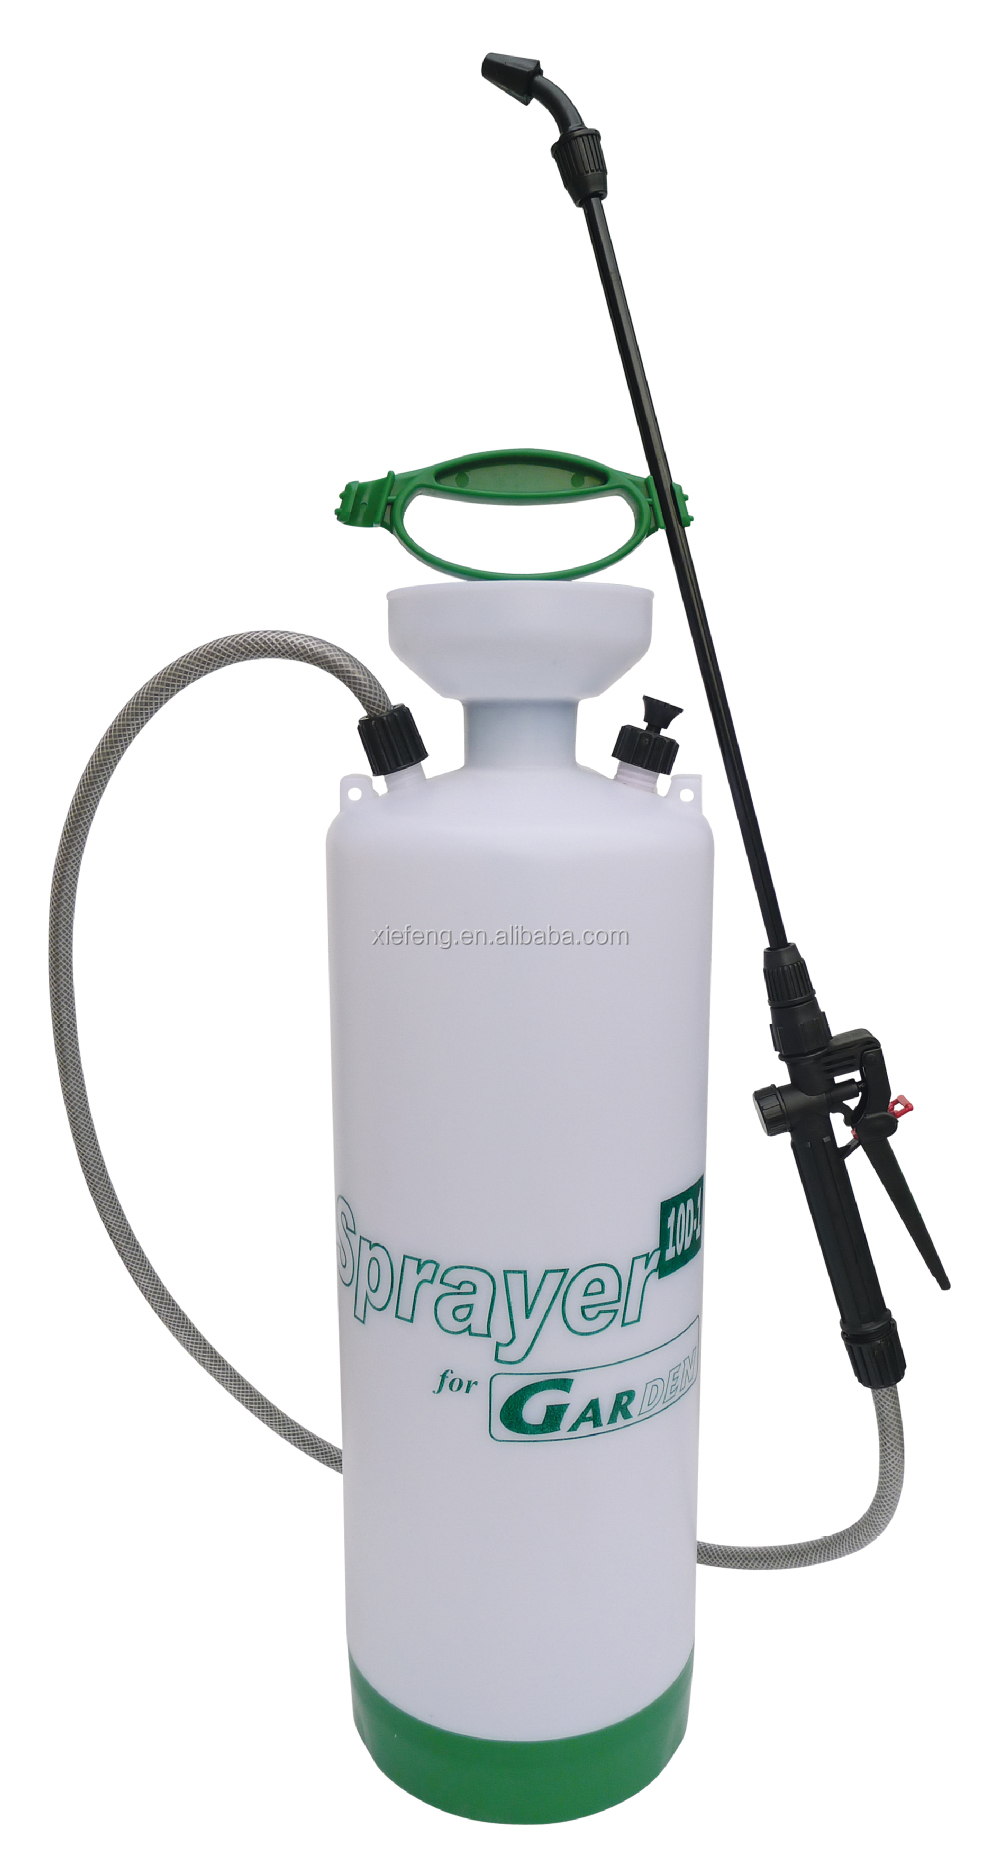 10 Litre sprayer new sprayer